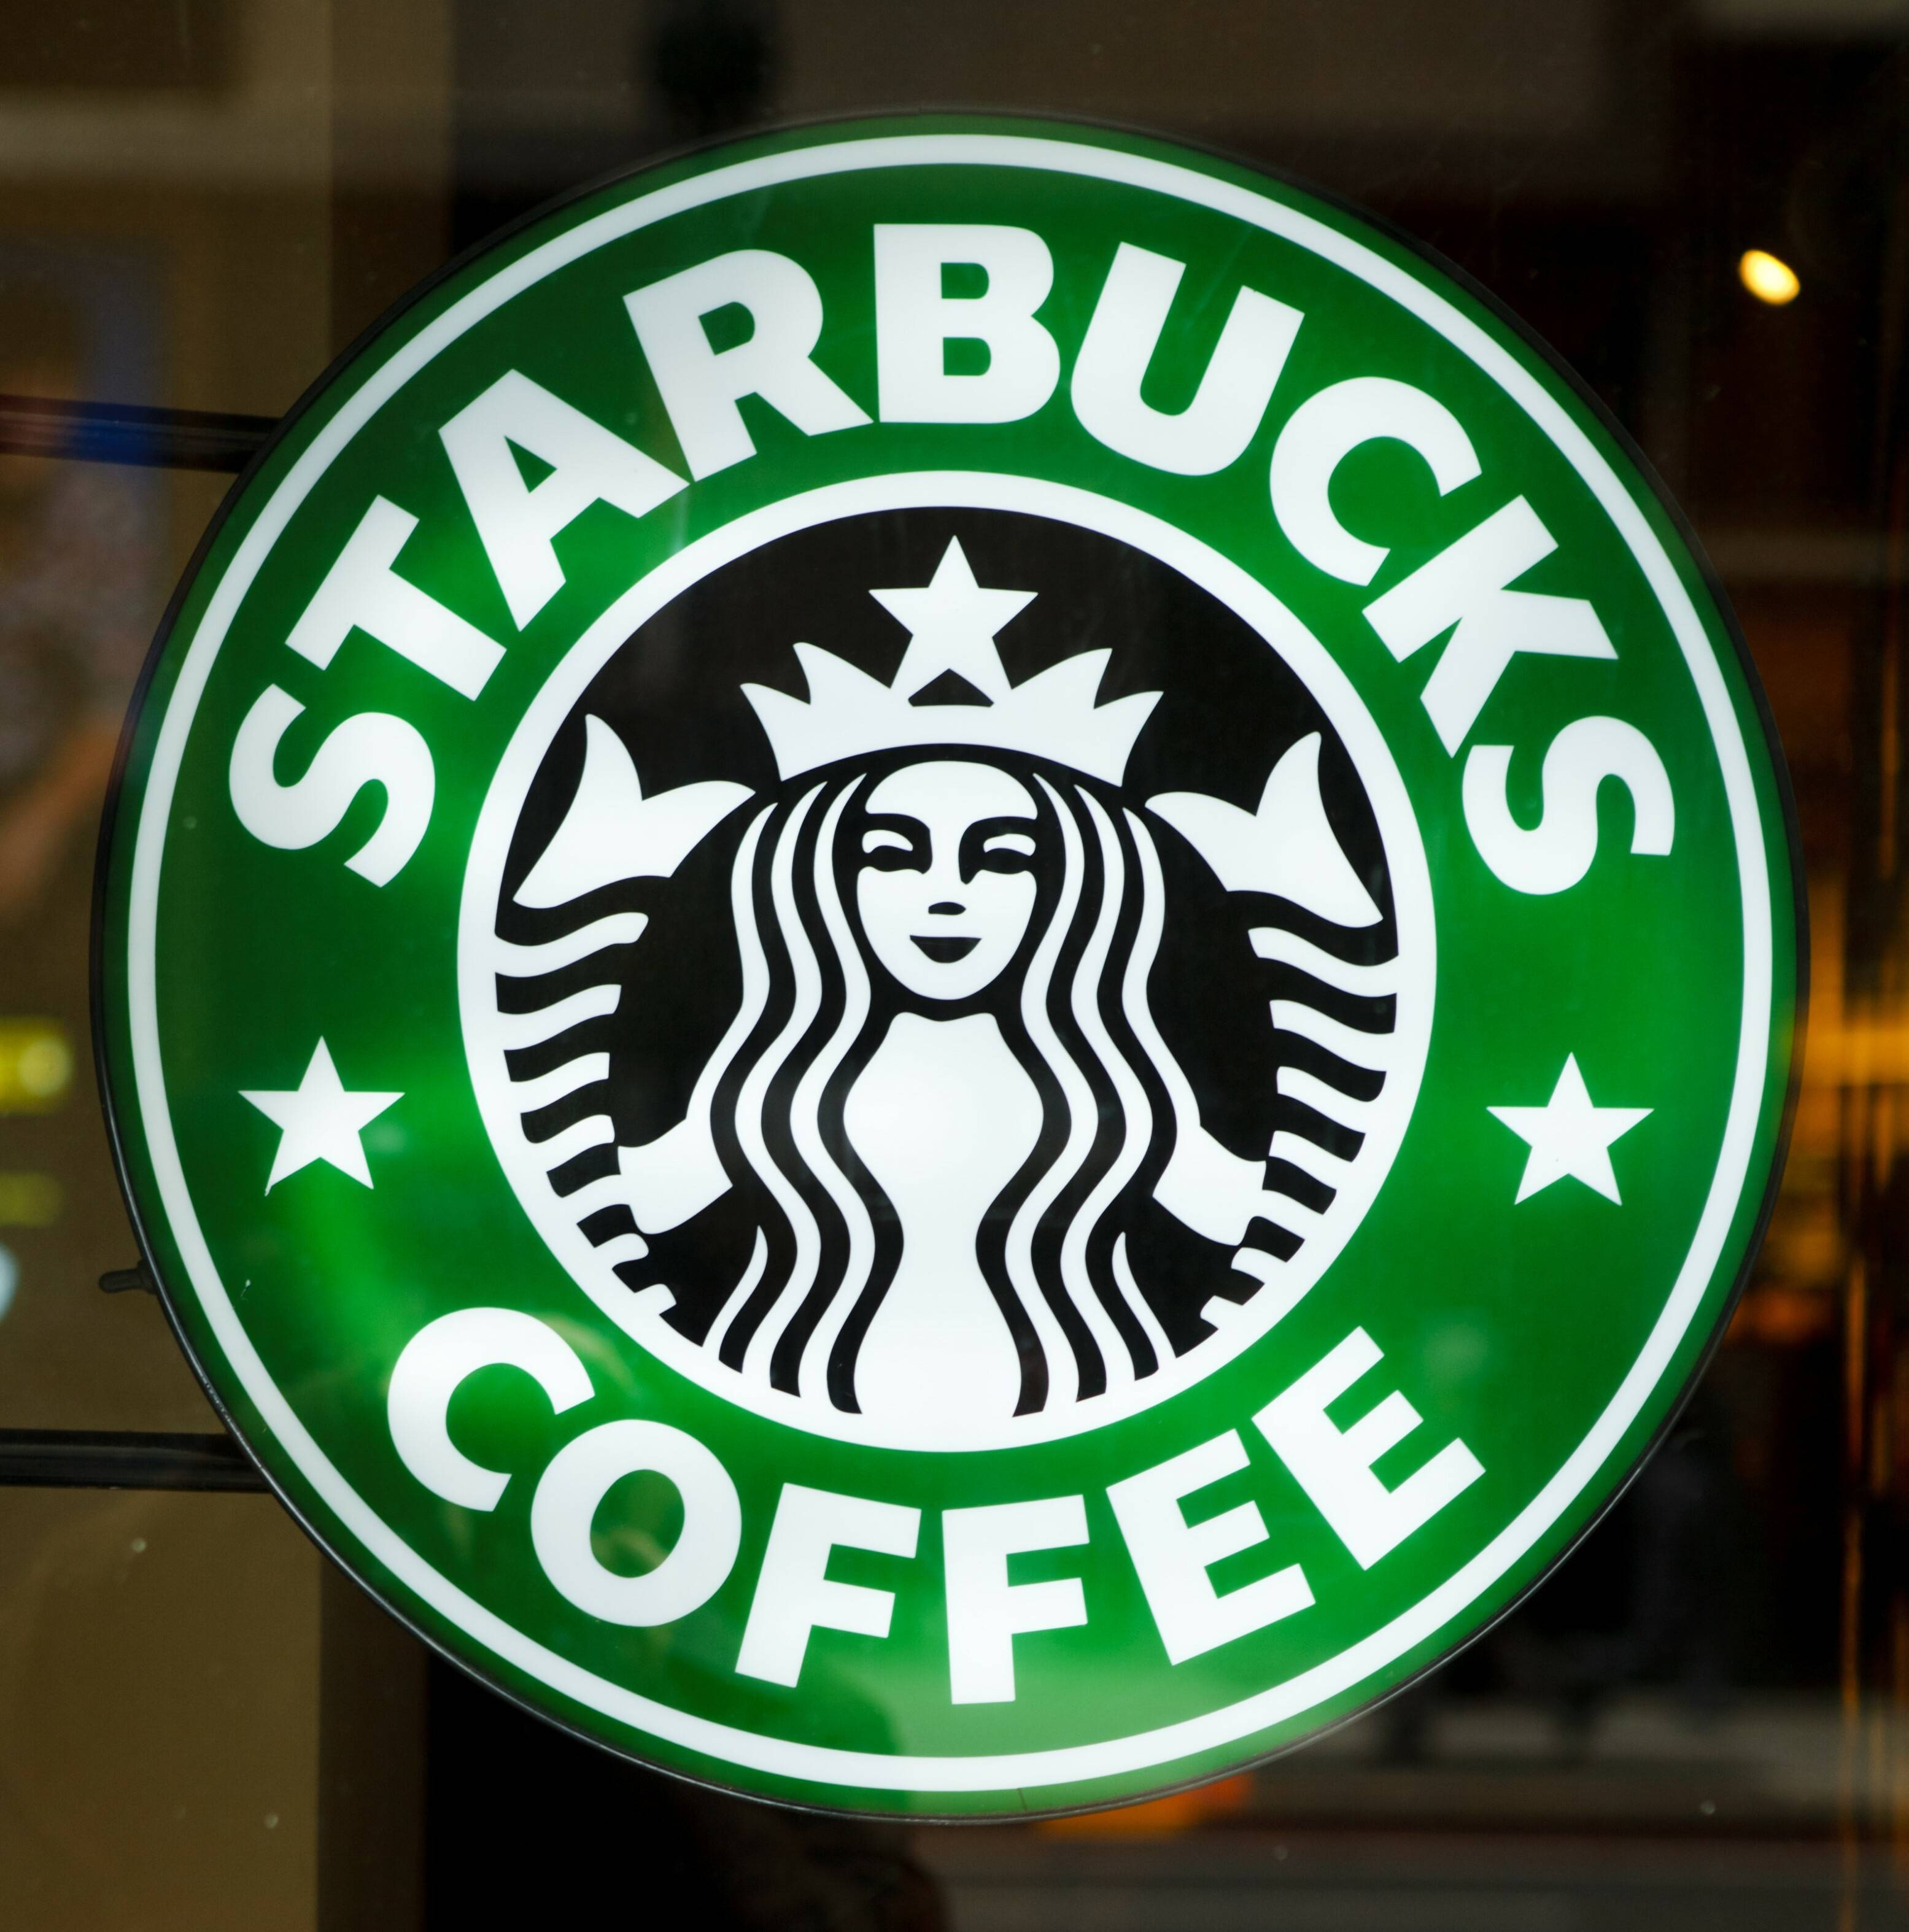 Starbucks suffers a $3.2 billion loss – can the coffee giant recover?